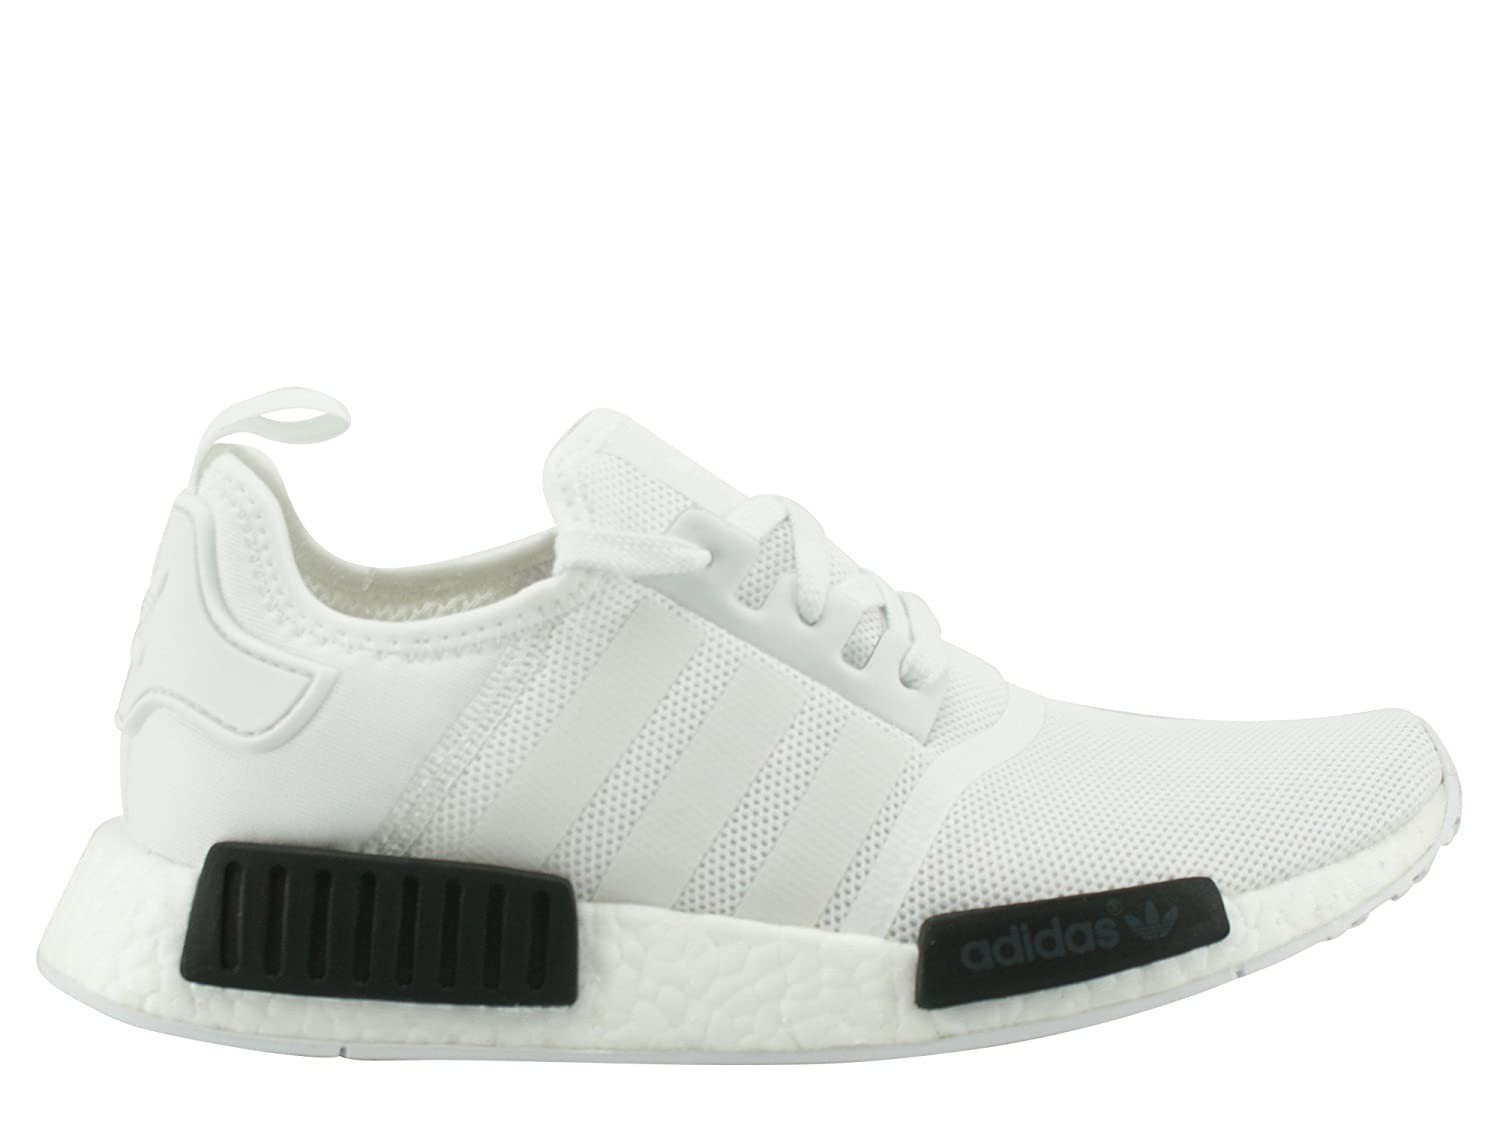 Adidas Originals NMD_R1 White Mesh Trainers